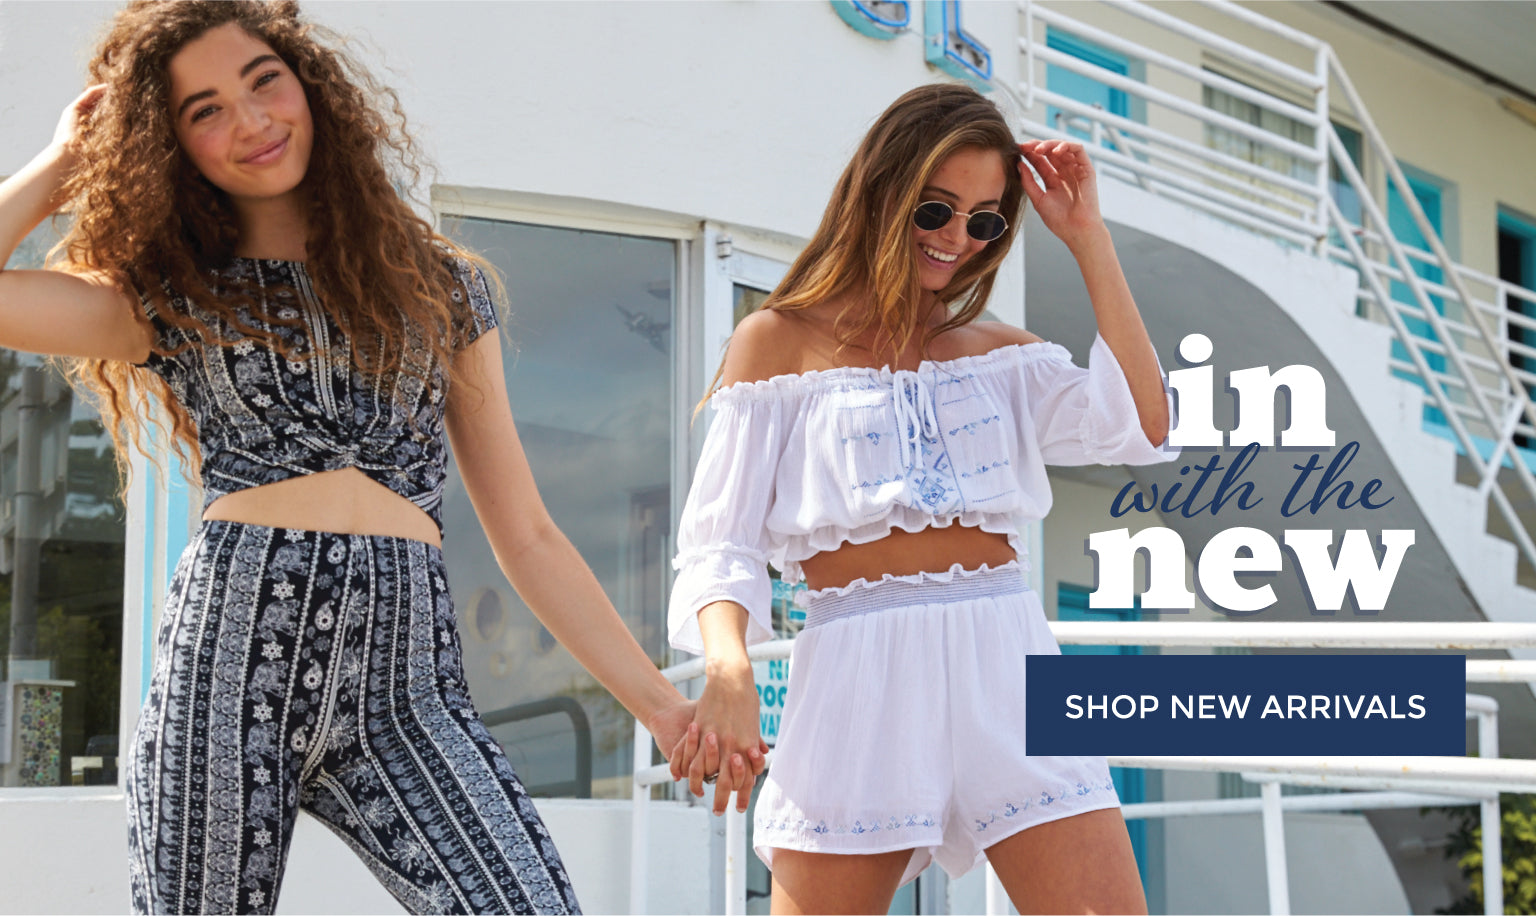 In with the NEW - Shop New Arrivals